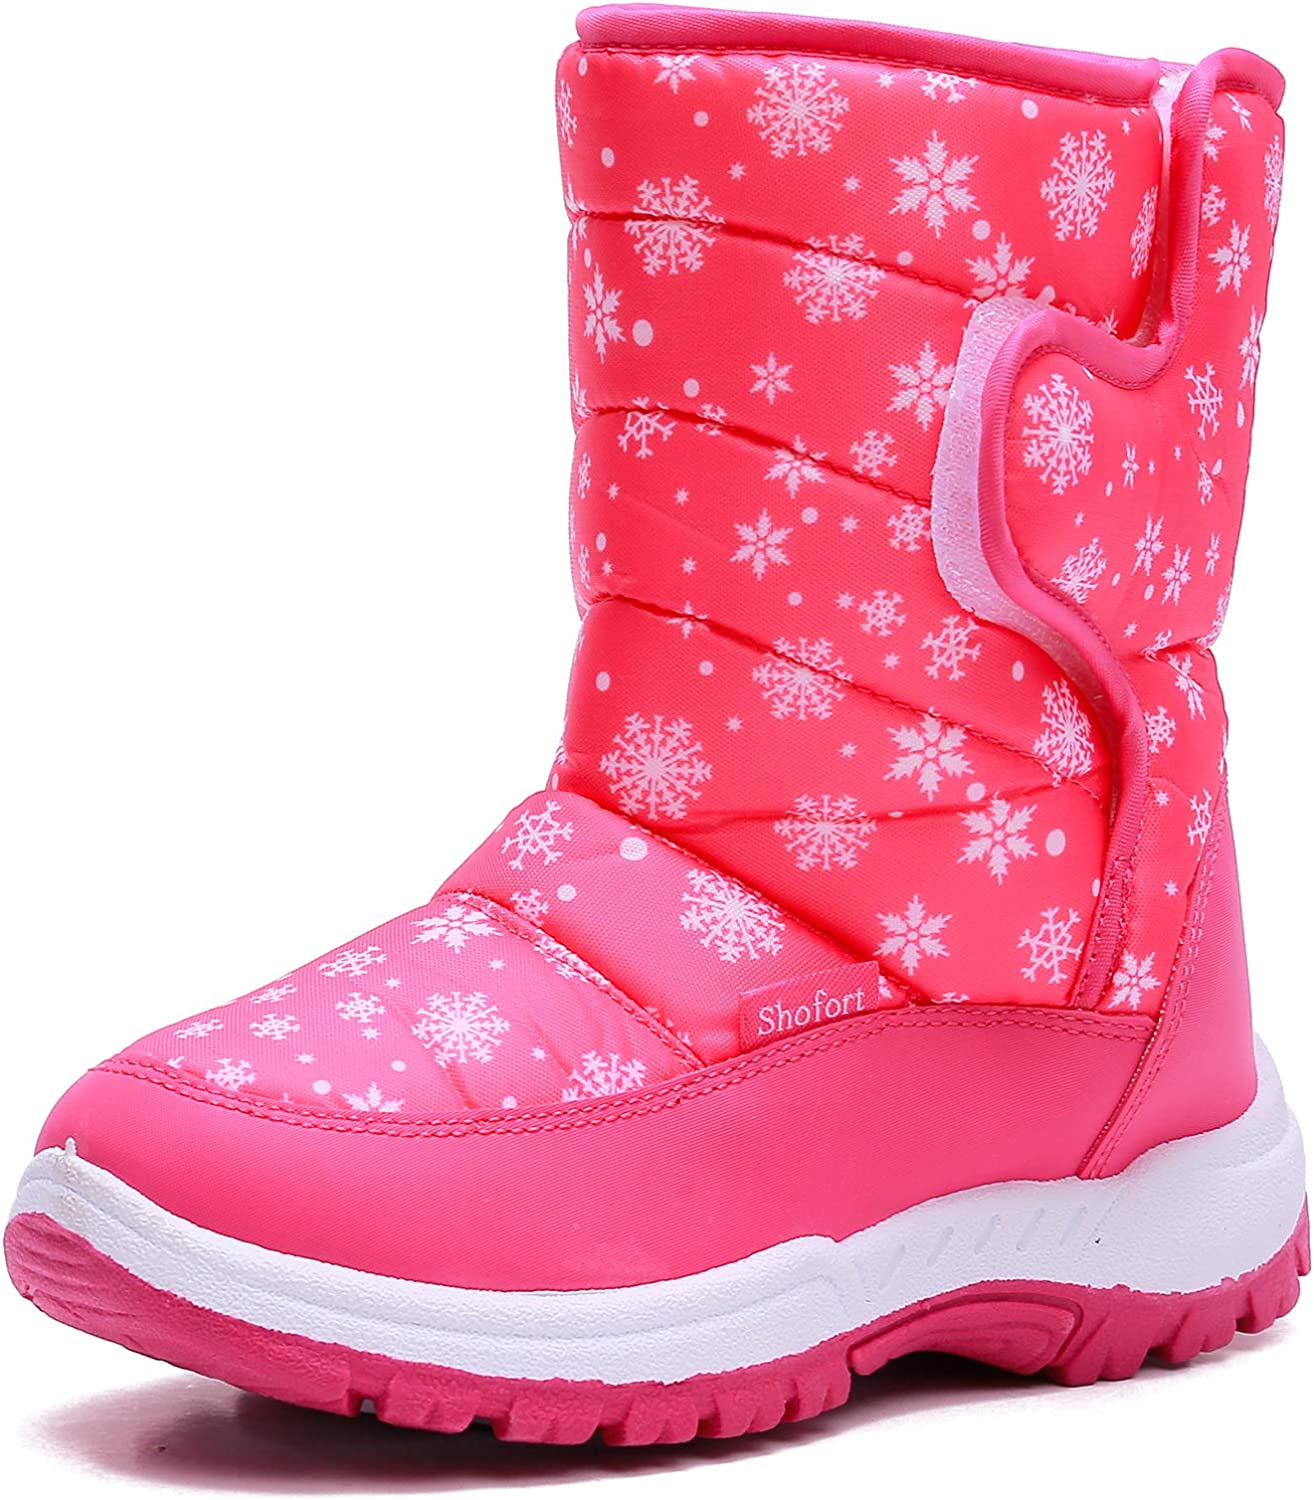 SHOFORT Kids Snow Boots for Boys & Girls Waterproof Insulated Winter Boots with Warm Fur Lined (Toddler/Little Kid/Big Kid)